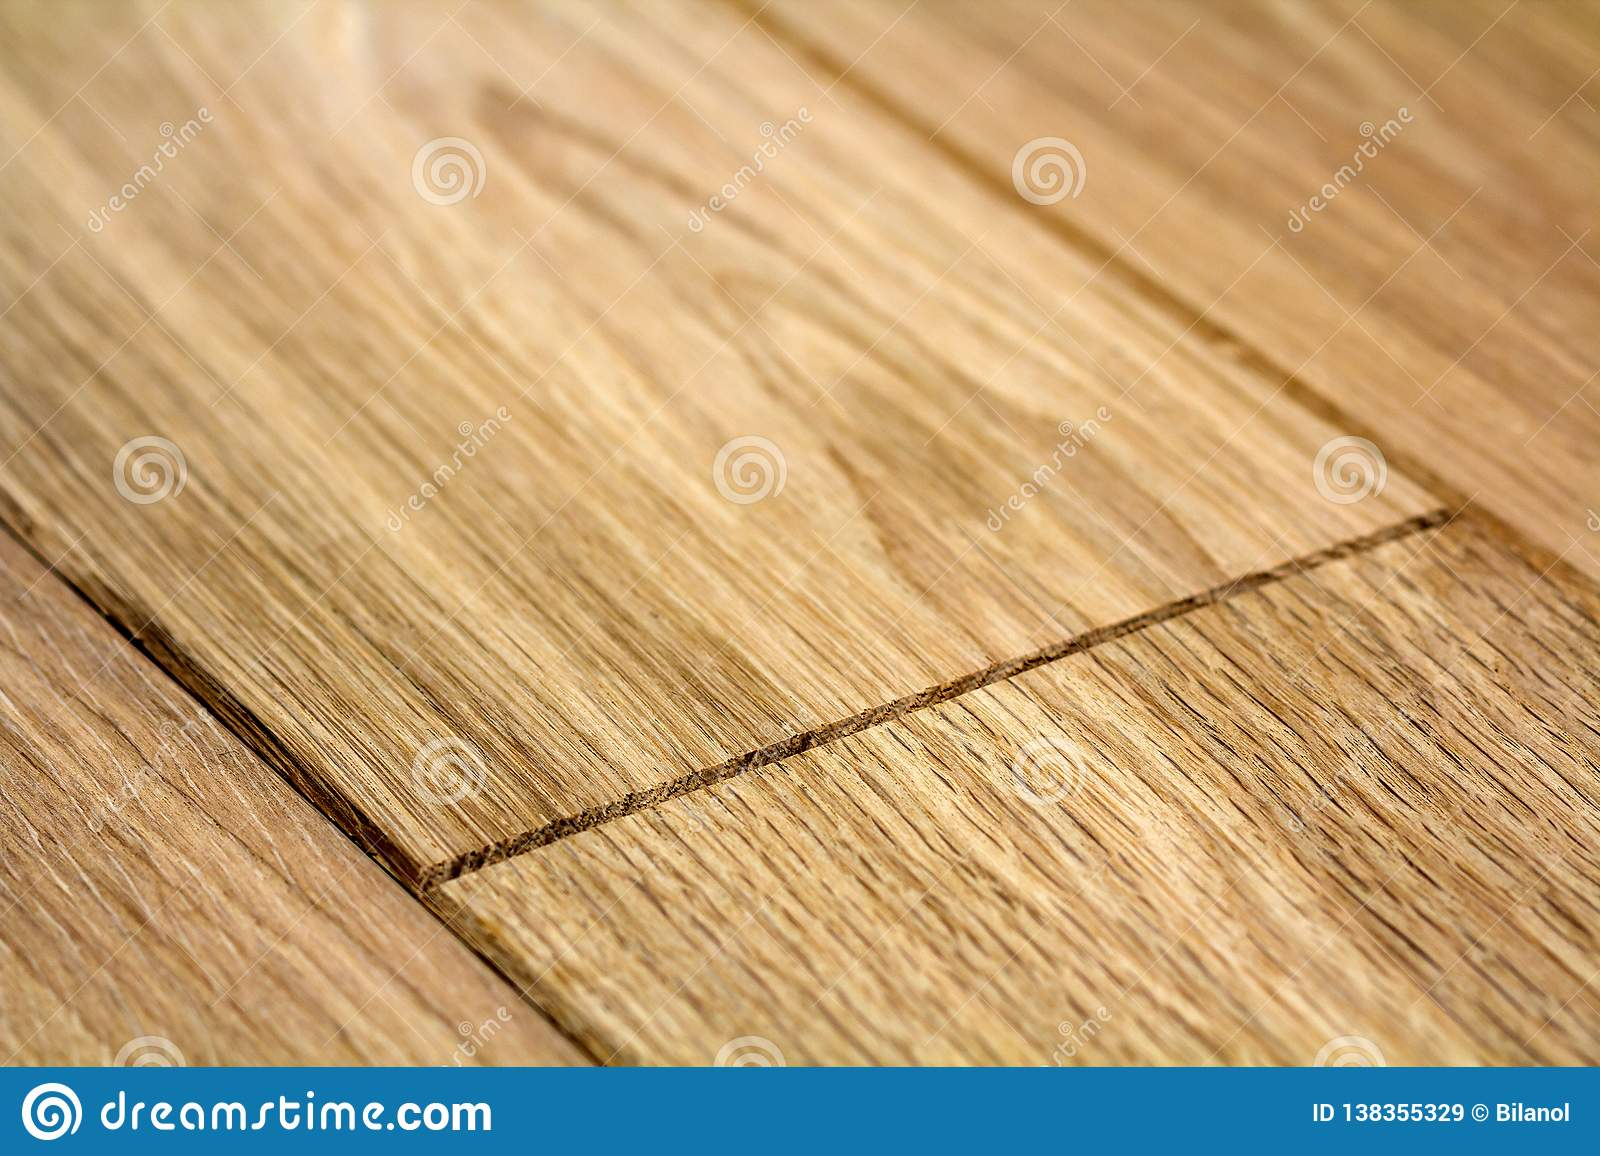 Natural light brown wooden parquet floor boards. Sunny soft yellow texture, copy space perspective background